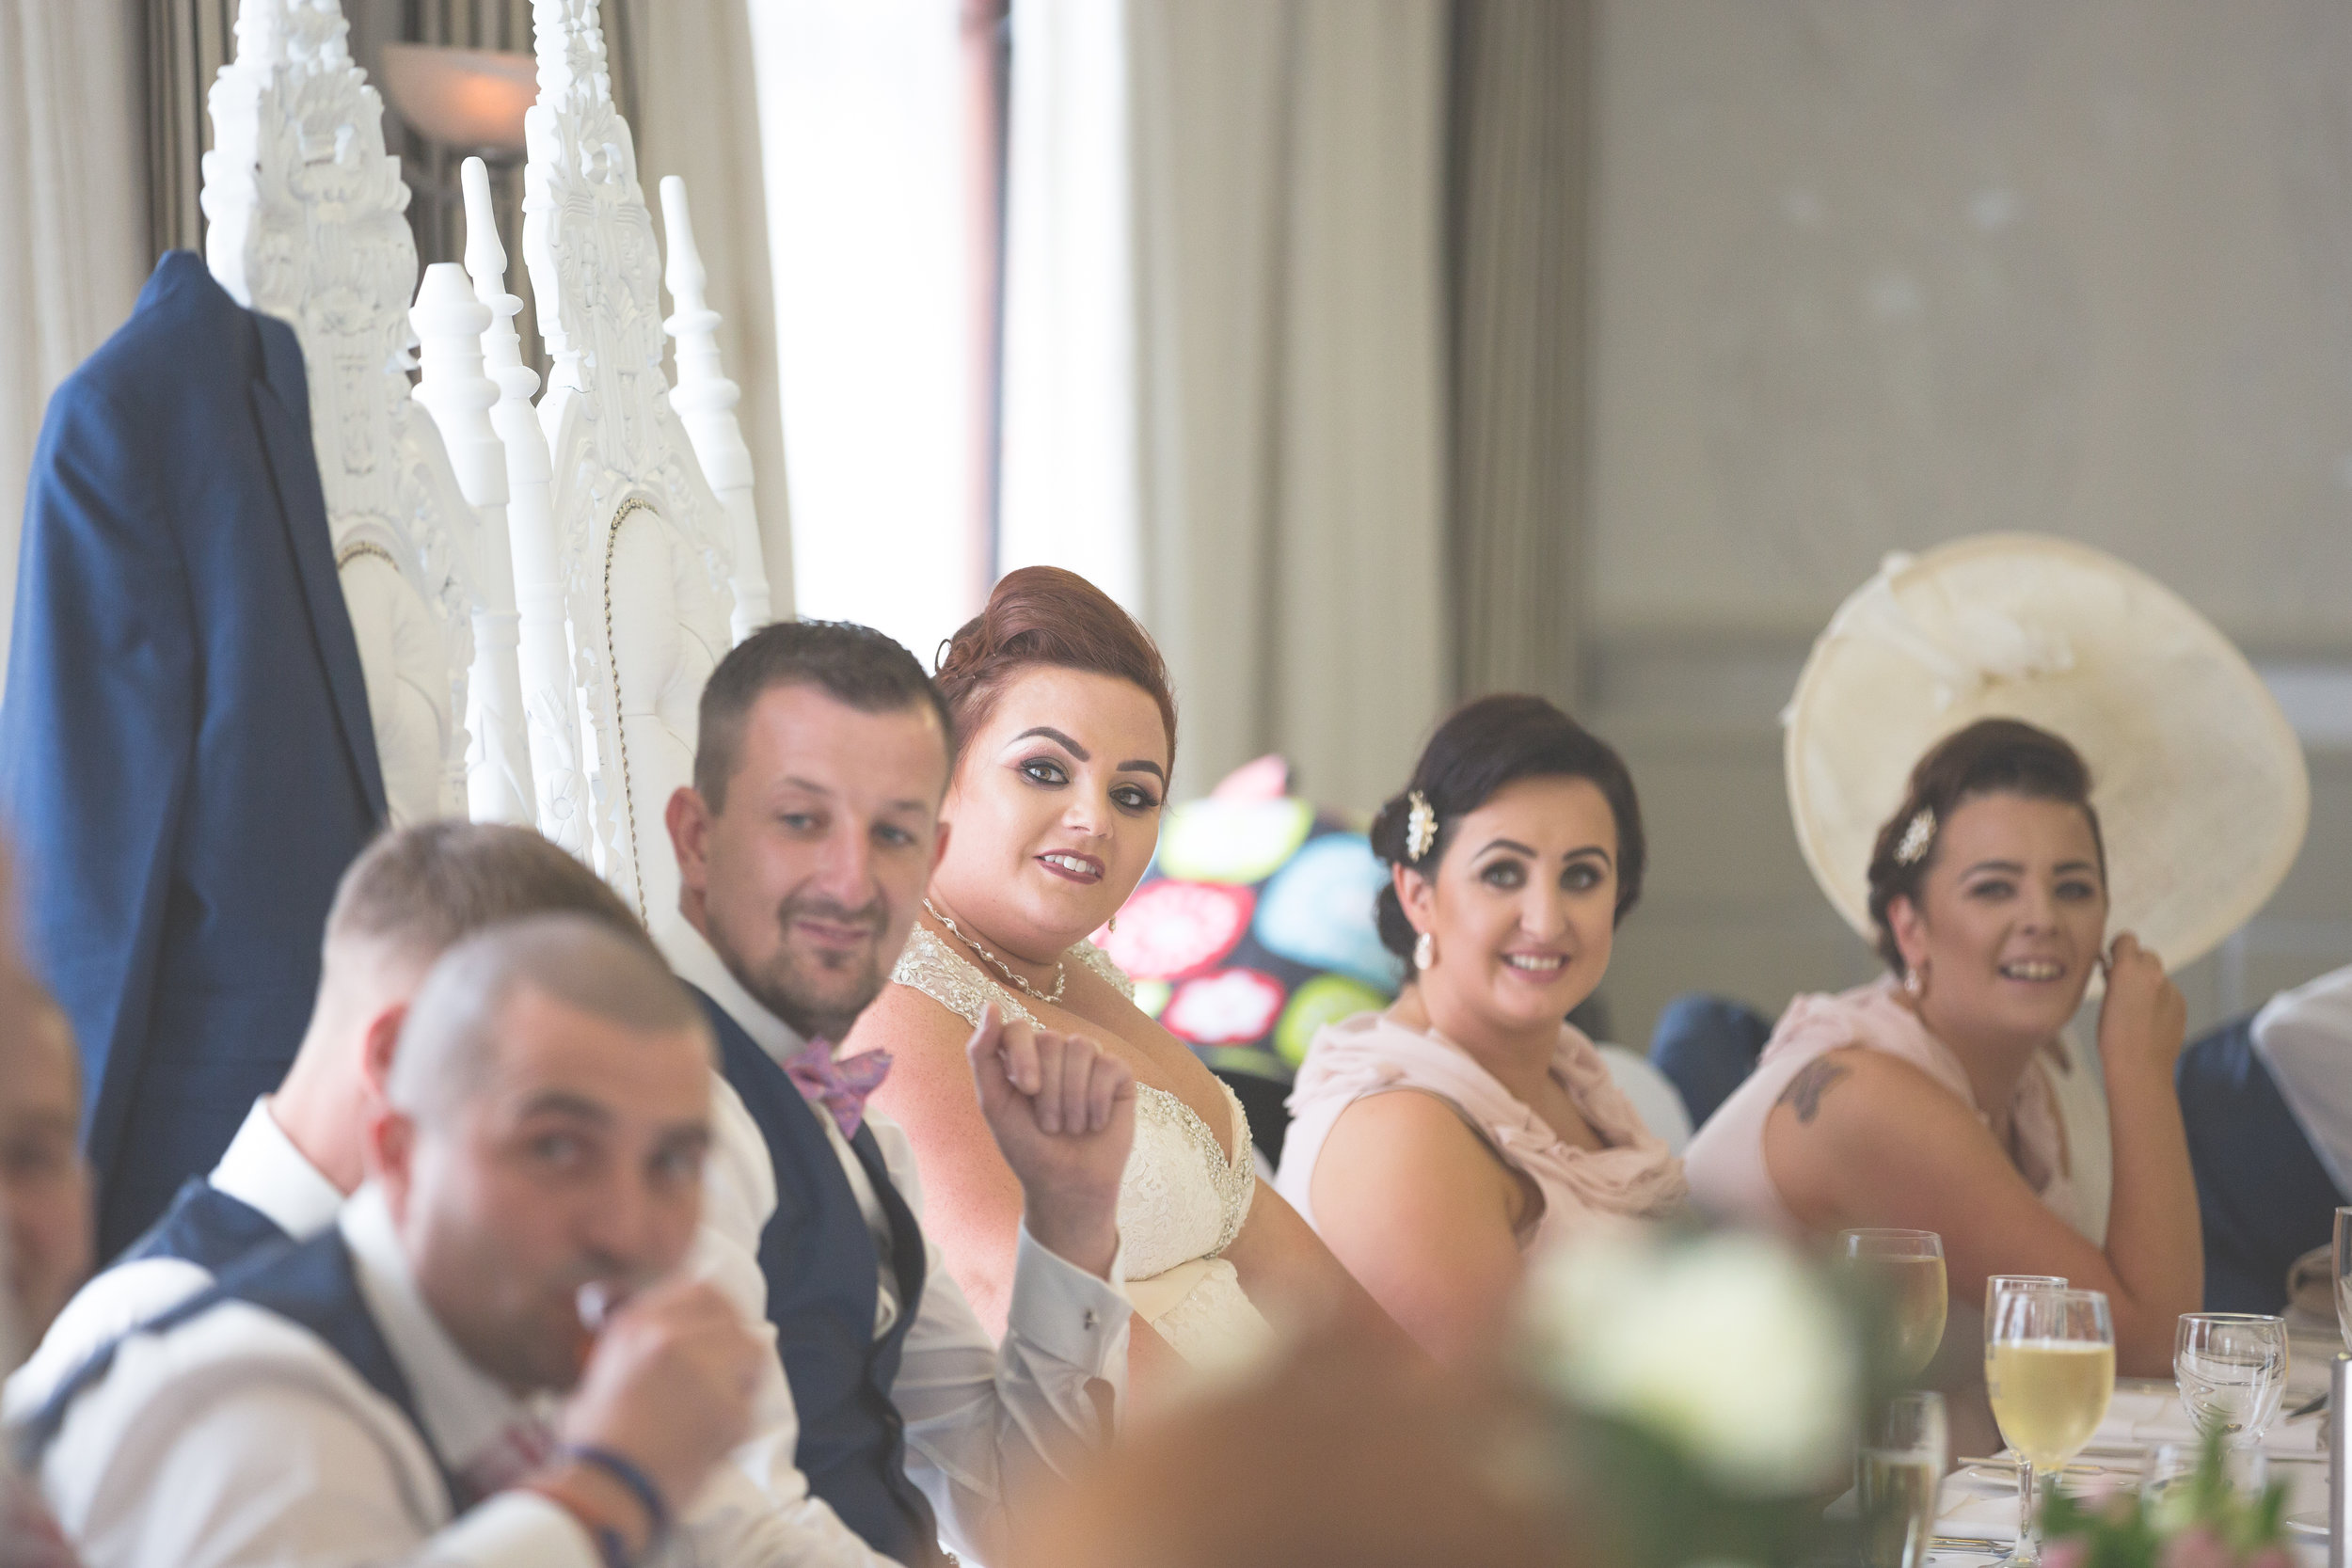 Antoinette & Stephen - Speeches | Brian McEwan Photography | Wedding Photographer Northern Ireland 35.jpg